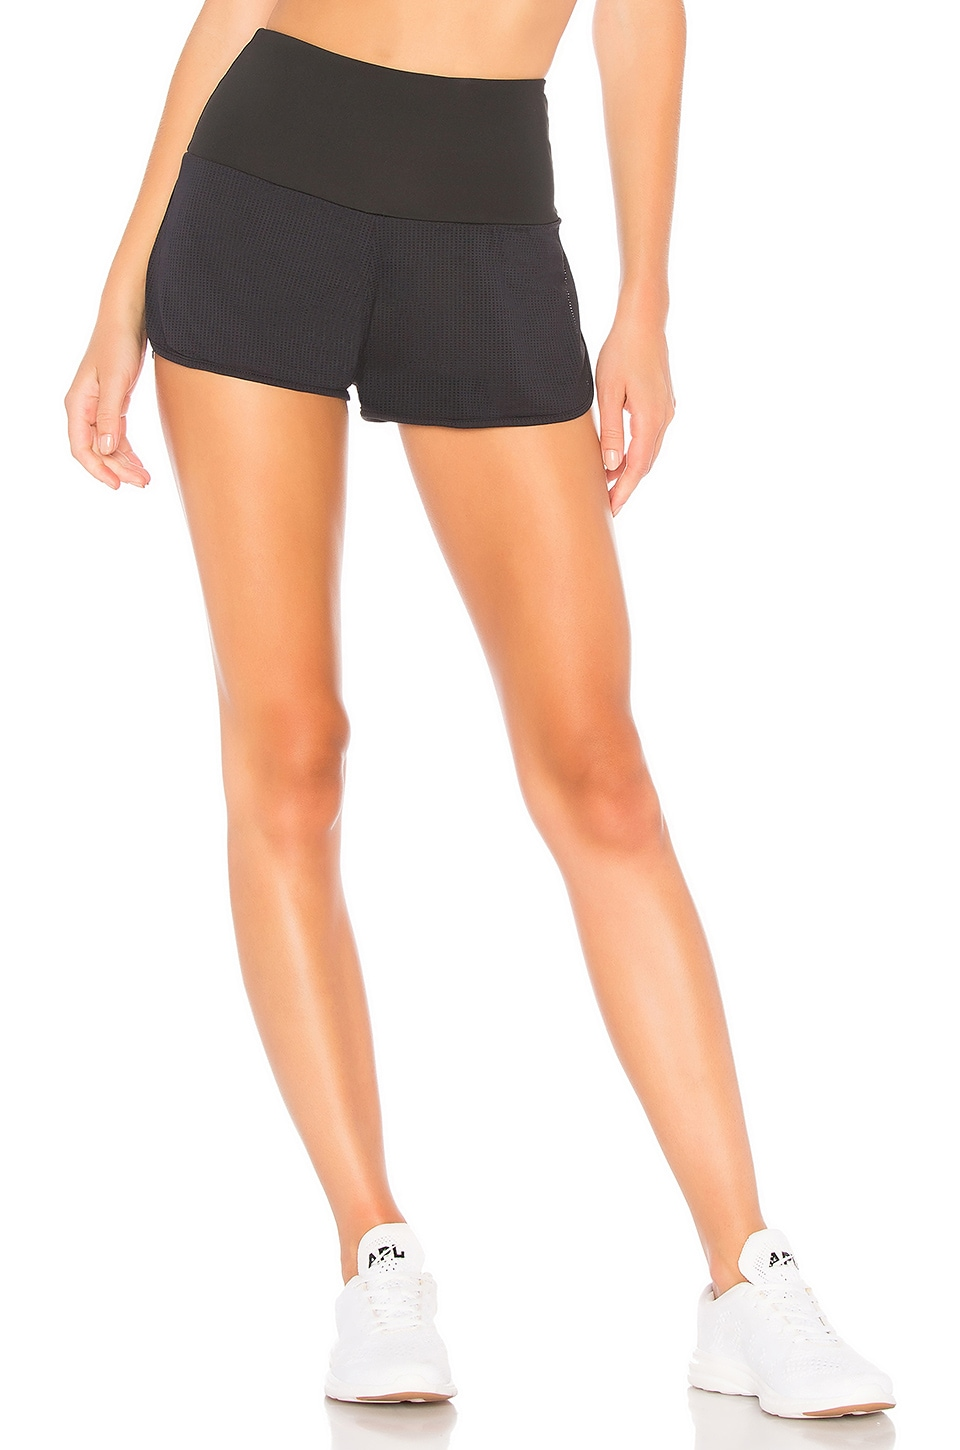 STRUT THIS Cici Short in Black